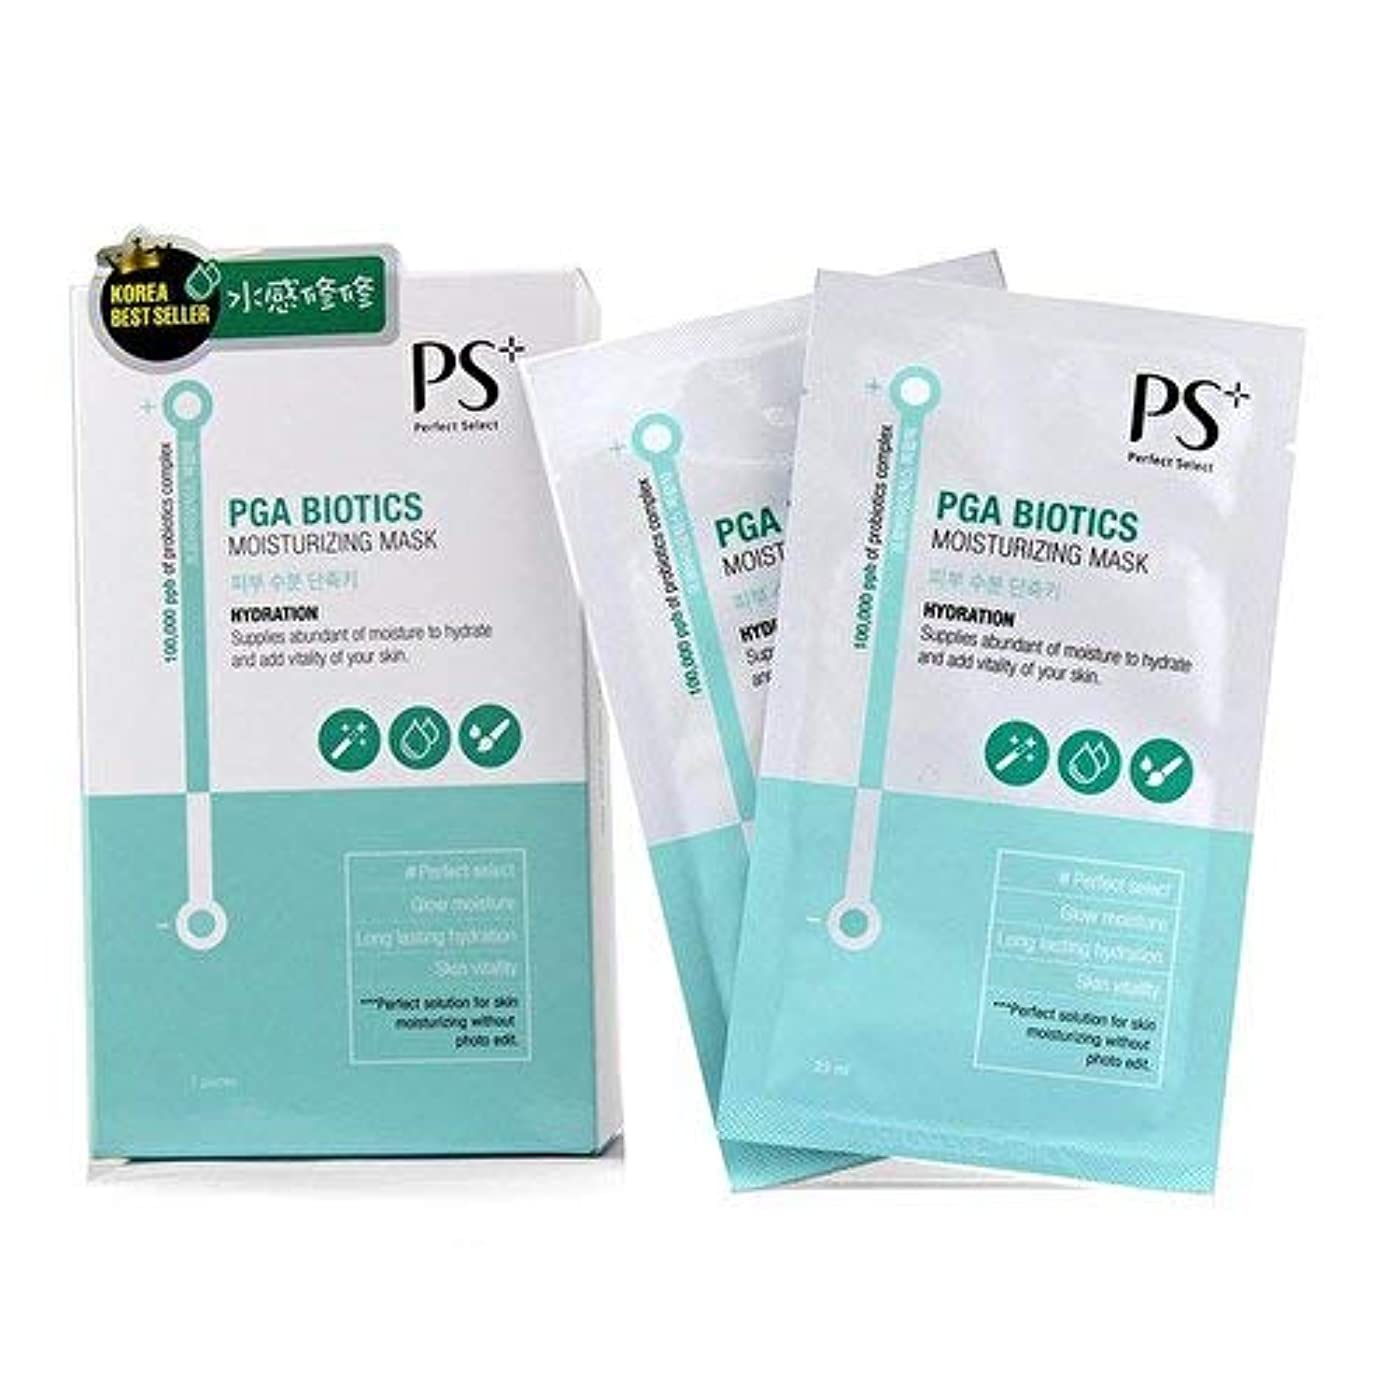 クスクスタオル賃金PS Perfect Select PGA Biotics Moisturizing Mask - Hydration 7pcs並行輸入品